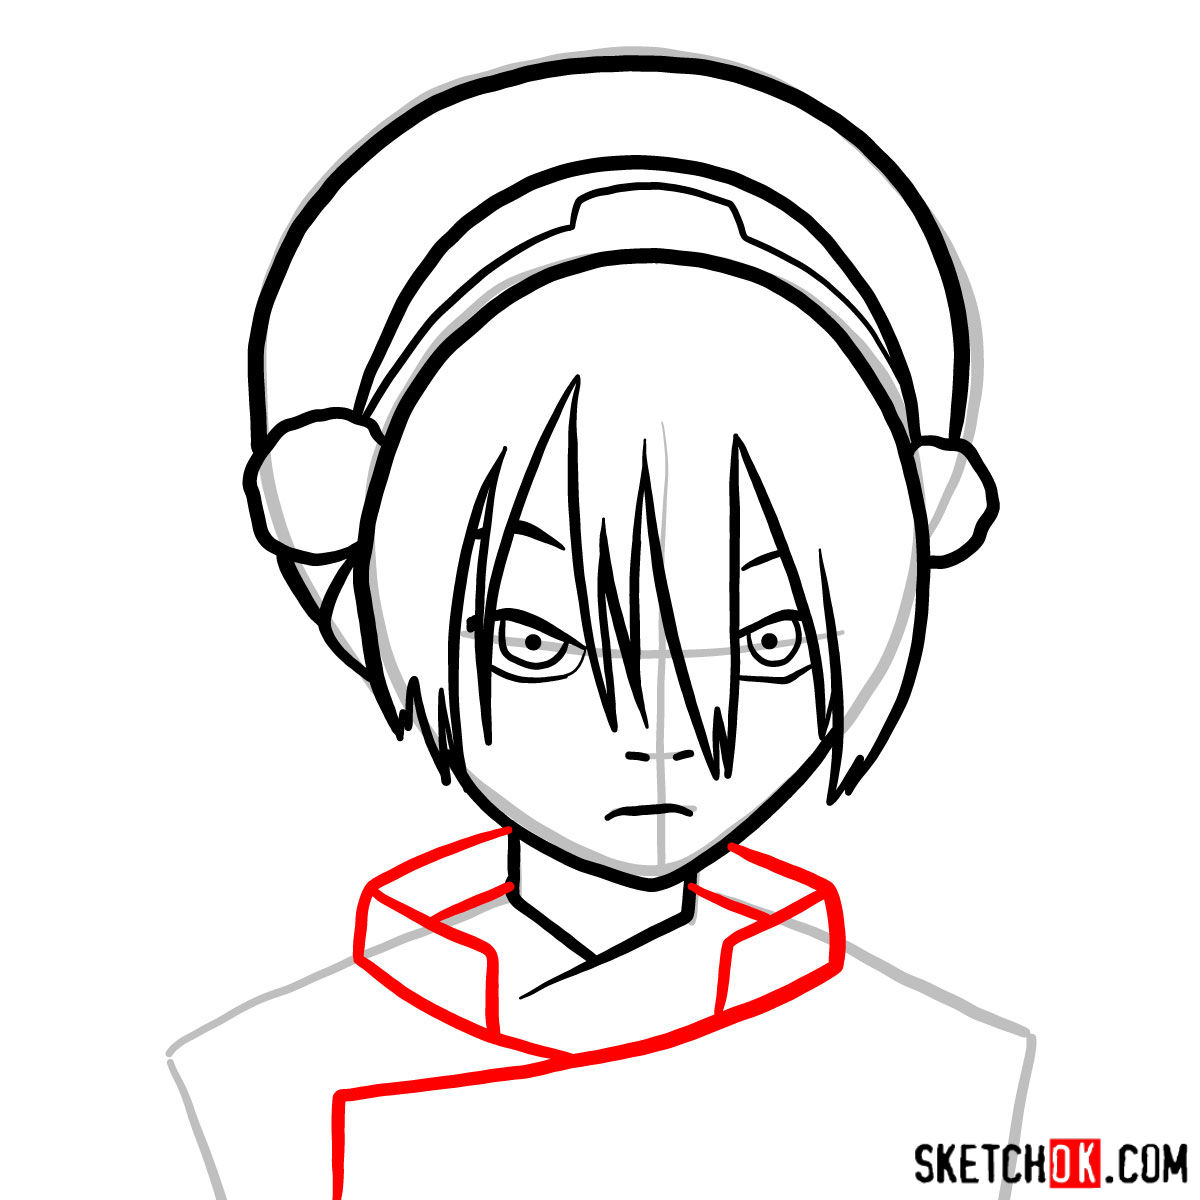 How to draw Toph Beifong's face - step 07